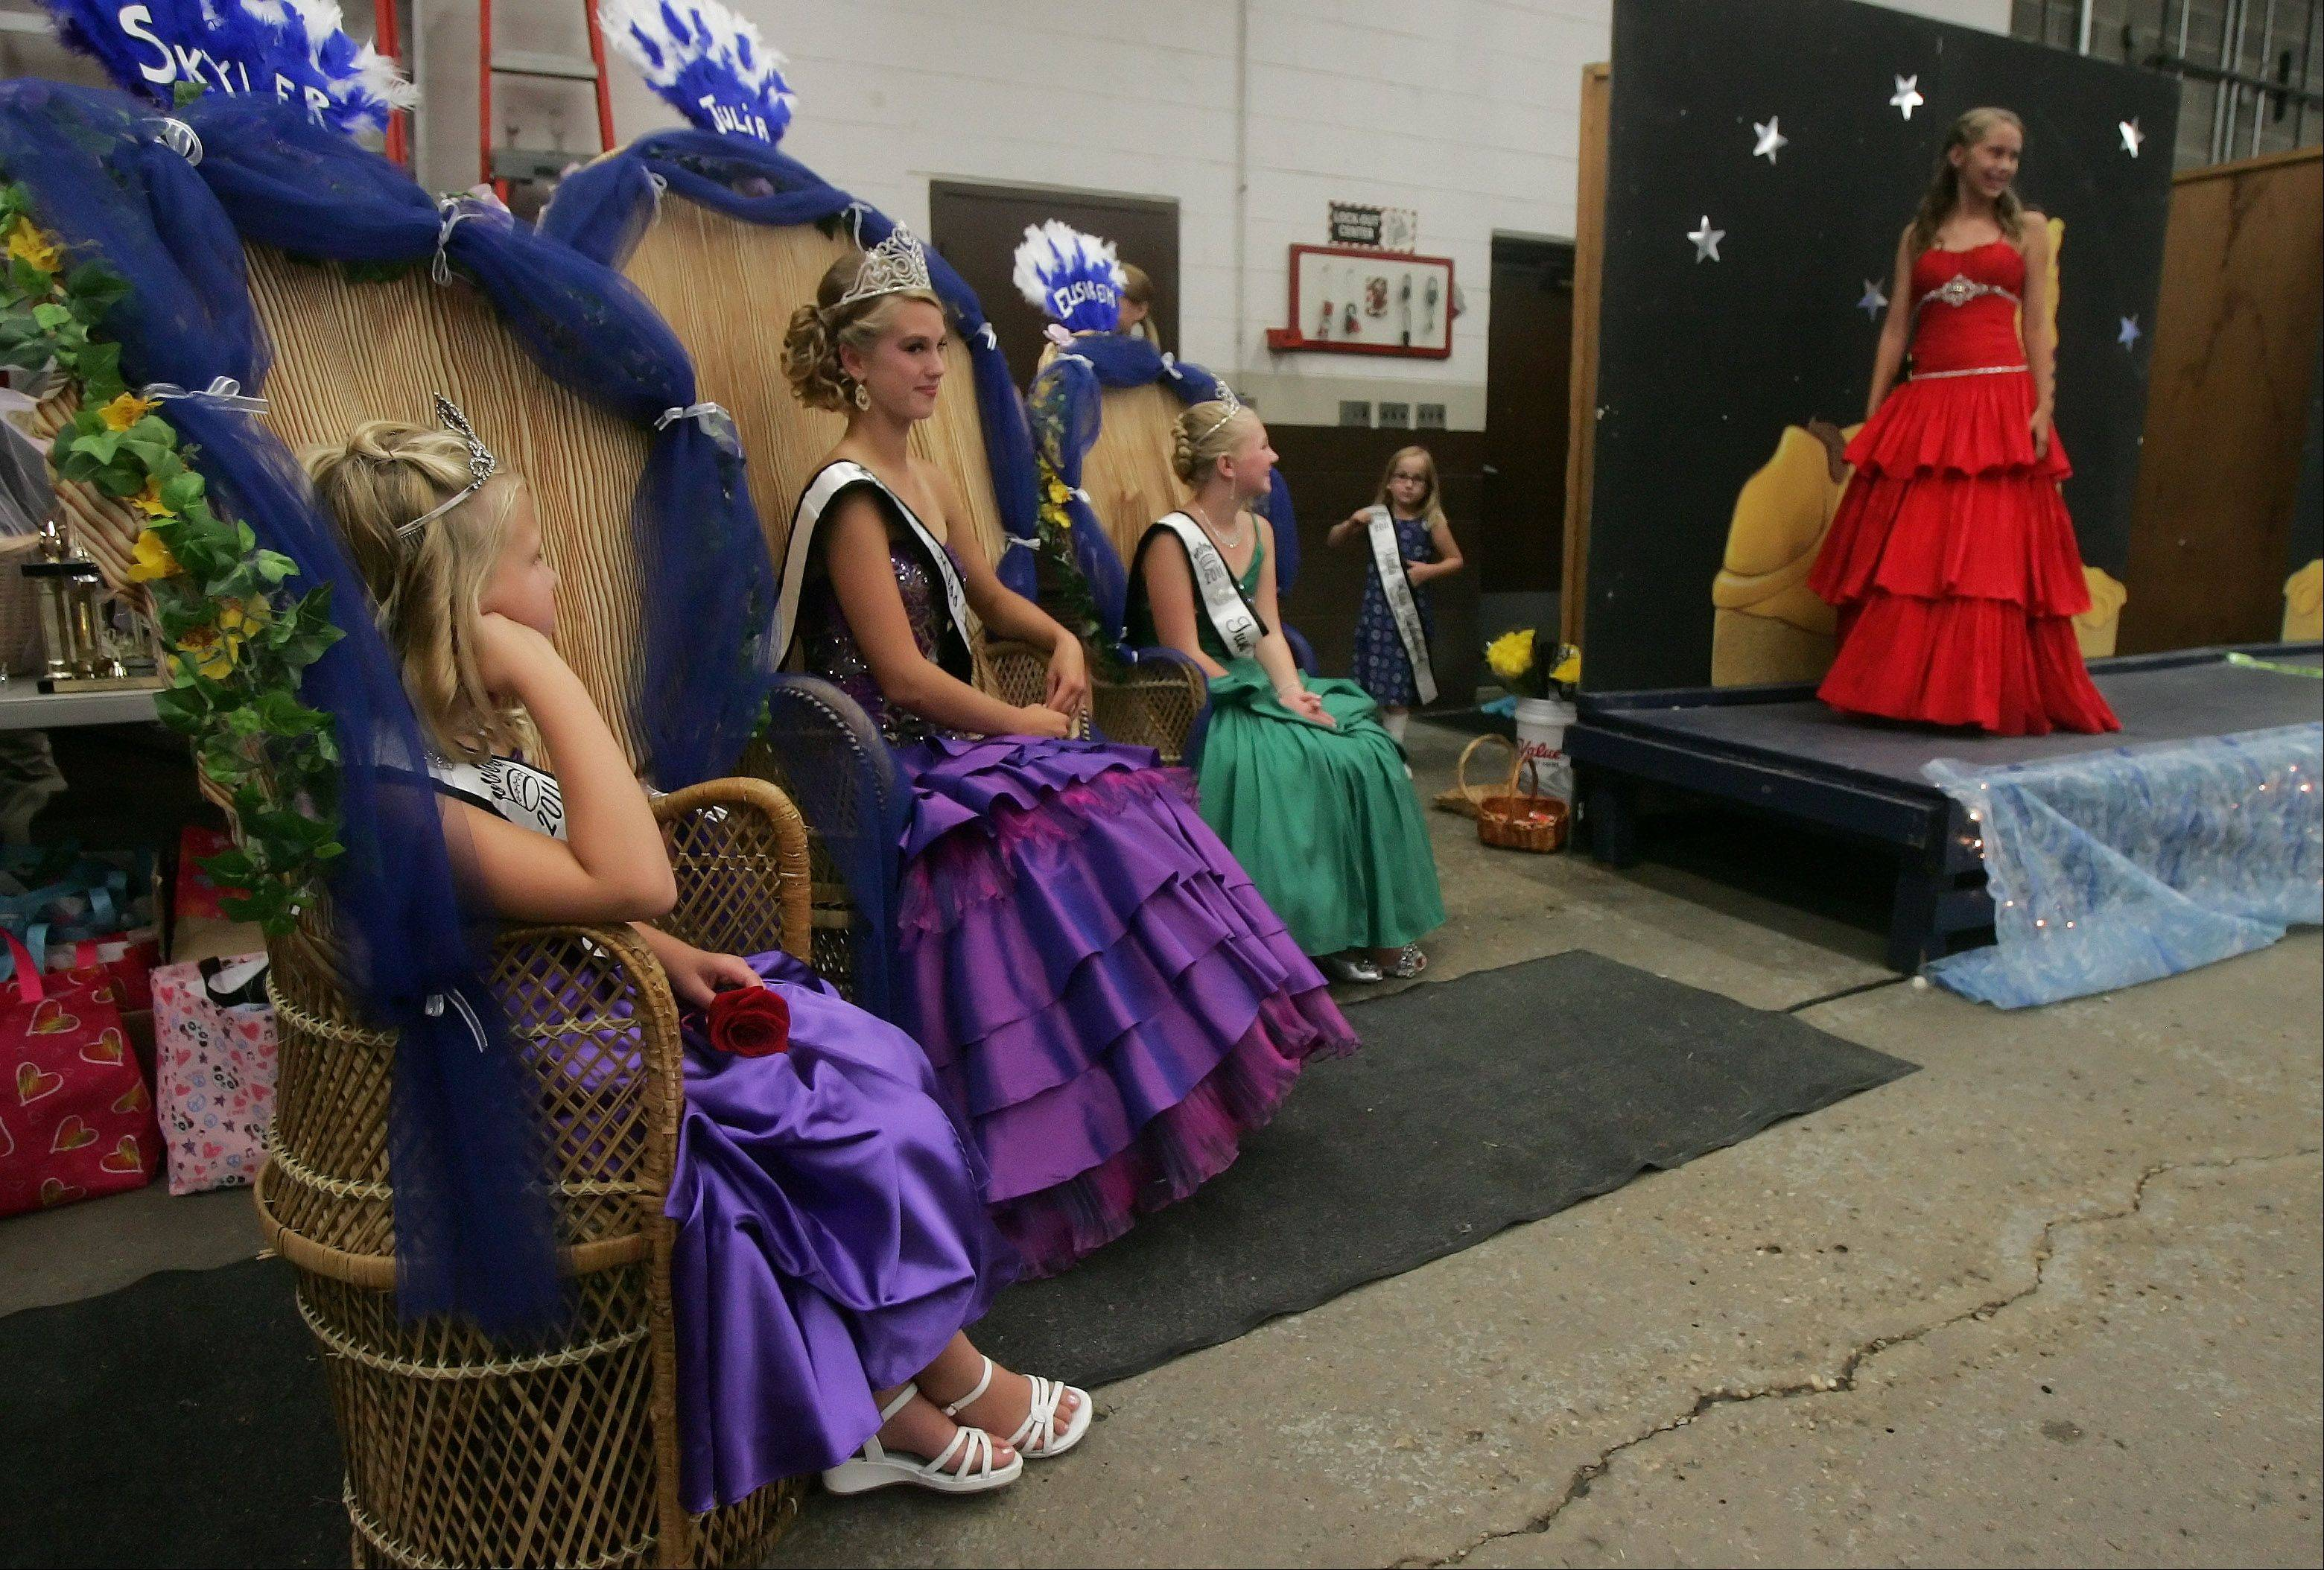 2011 Little Miss Lindenfest Skyler Przanowski, left, Miss Lindenhurst Julia Bauschke and Junior Miss Elisabeth Mies watch as Mya Pfeifer, 12, walks across the stage during last year's pageant on the first day of Lindenfest.